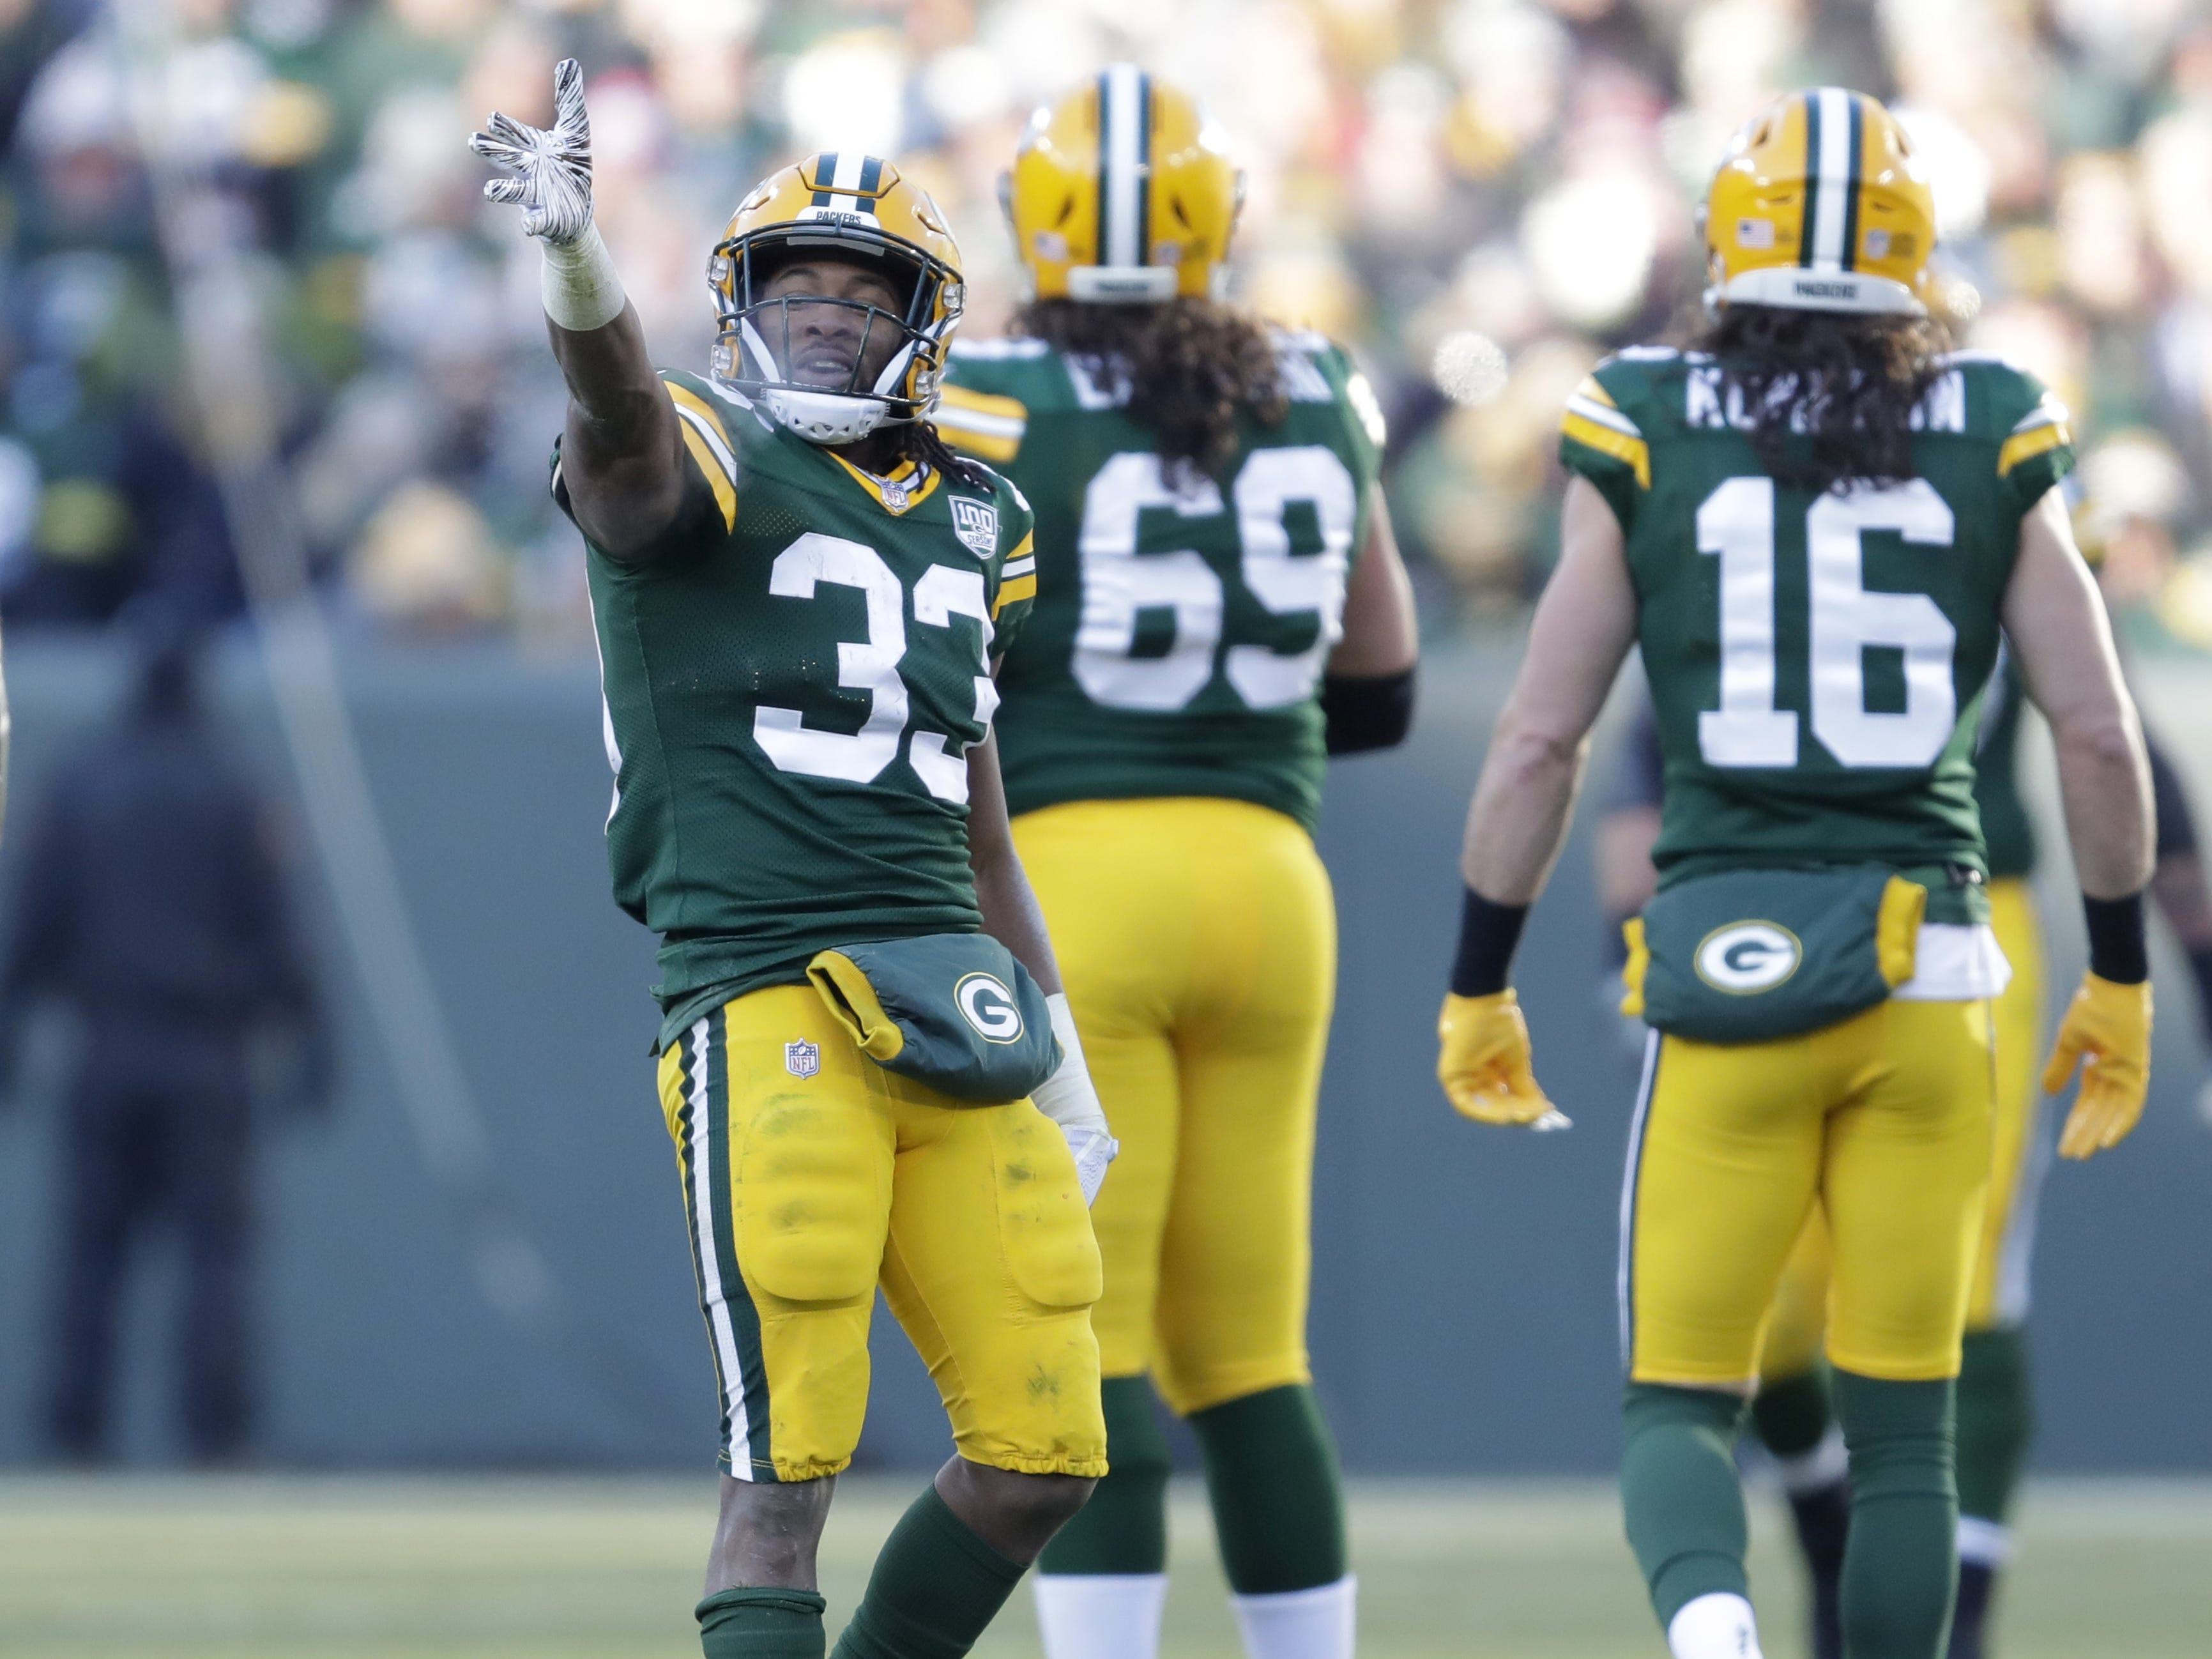 Green Bay Packers running back Aaron Jones (33) signals for a first down against the Atlanta Falcons Sunday, December 9, 2018, at Lambeau Field in Green Bay, Wis.  Dan Powers/USA TODAY NETWORK-Wisconsin